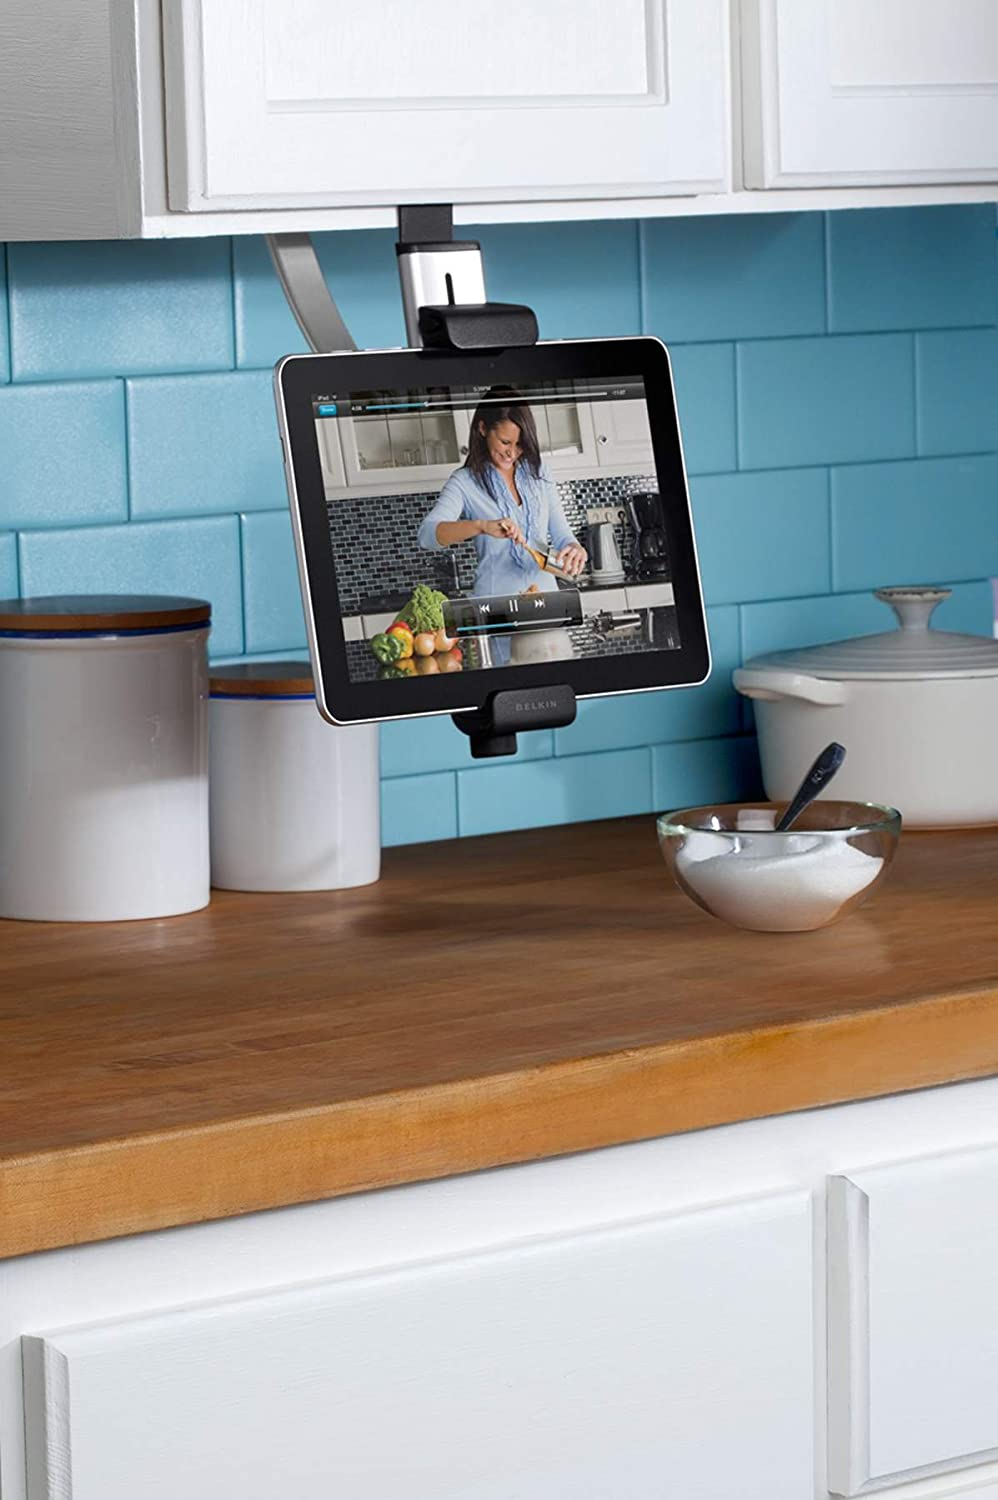 Amazon.com: Belkin Kitchen Cabinet Tablet Mount: Computers & Accessories